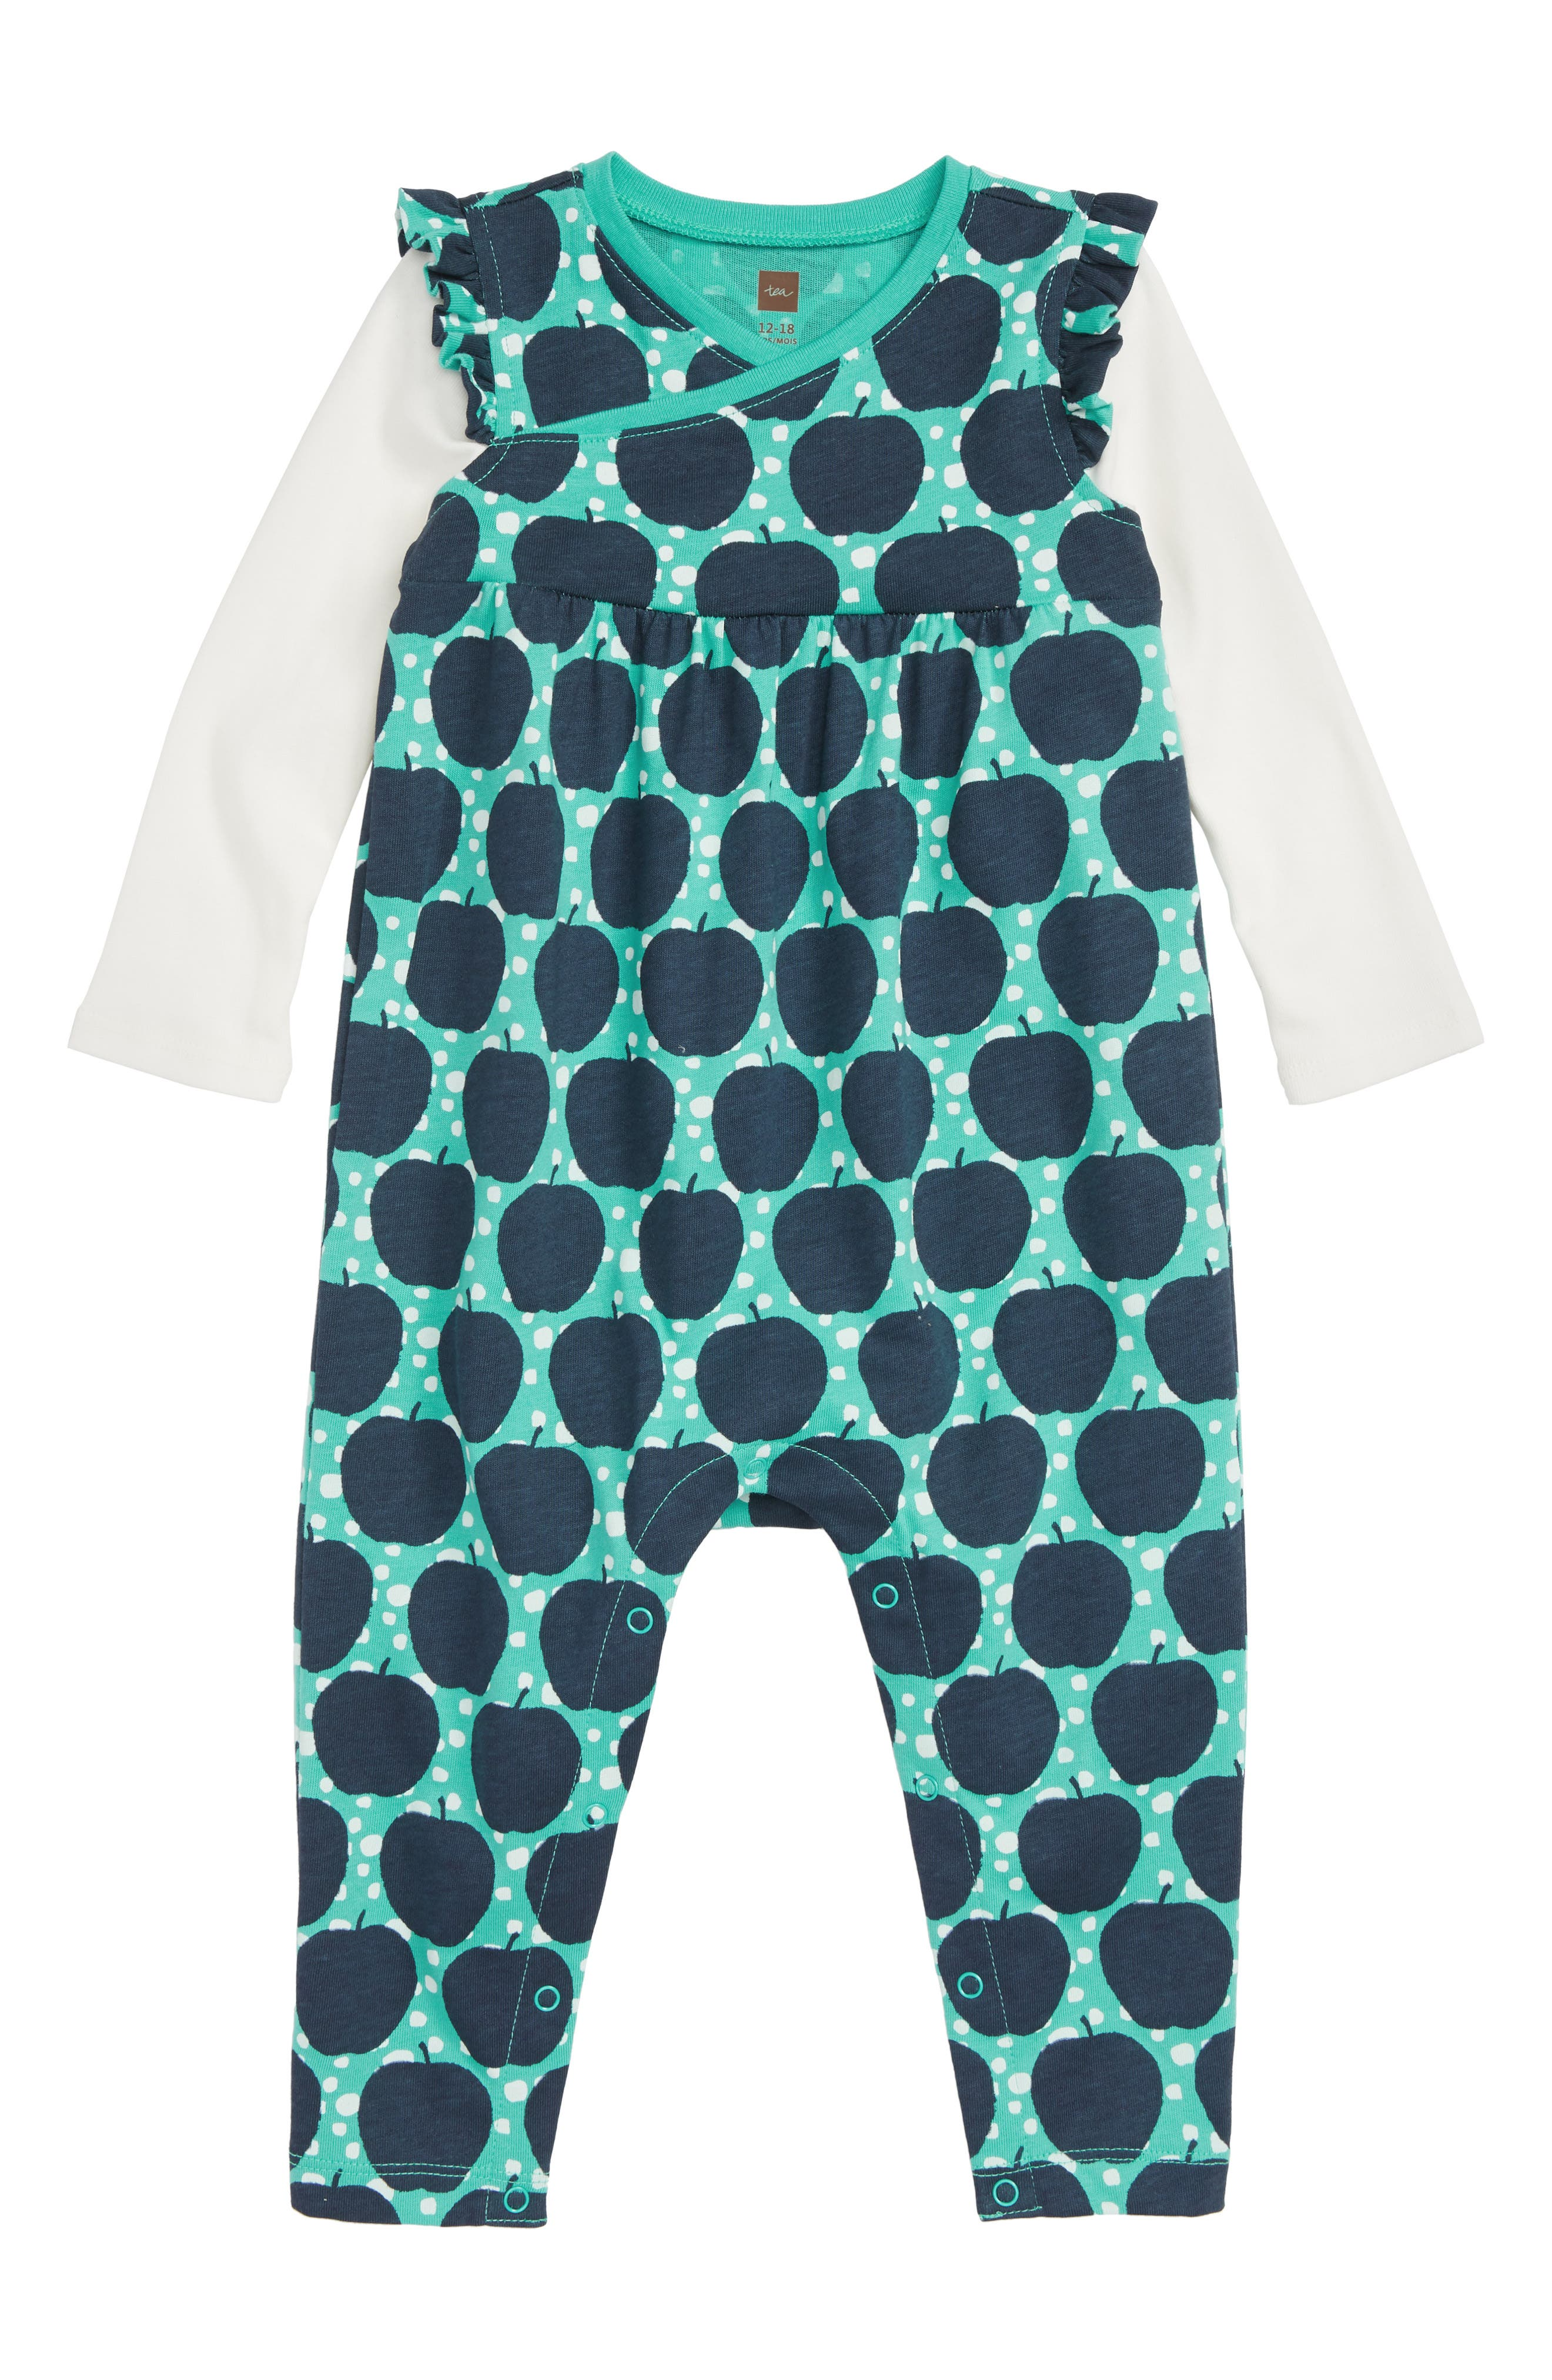 Double Decker Flutter Romper,                         Main,                         color, APPLE WAX PRINT